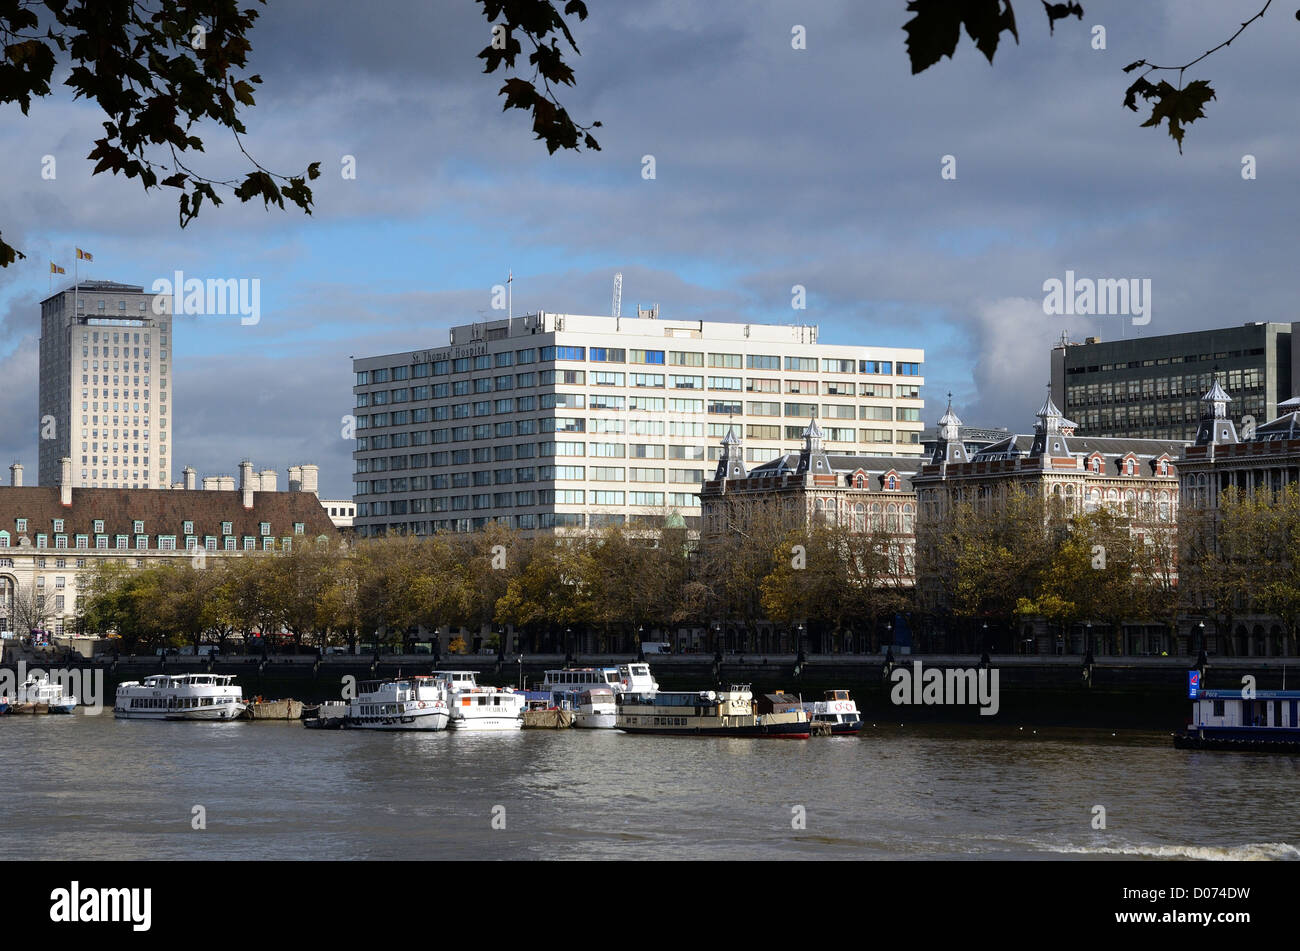 St .Thomas' Hospital Lambeth London - Stock Image